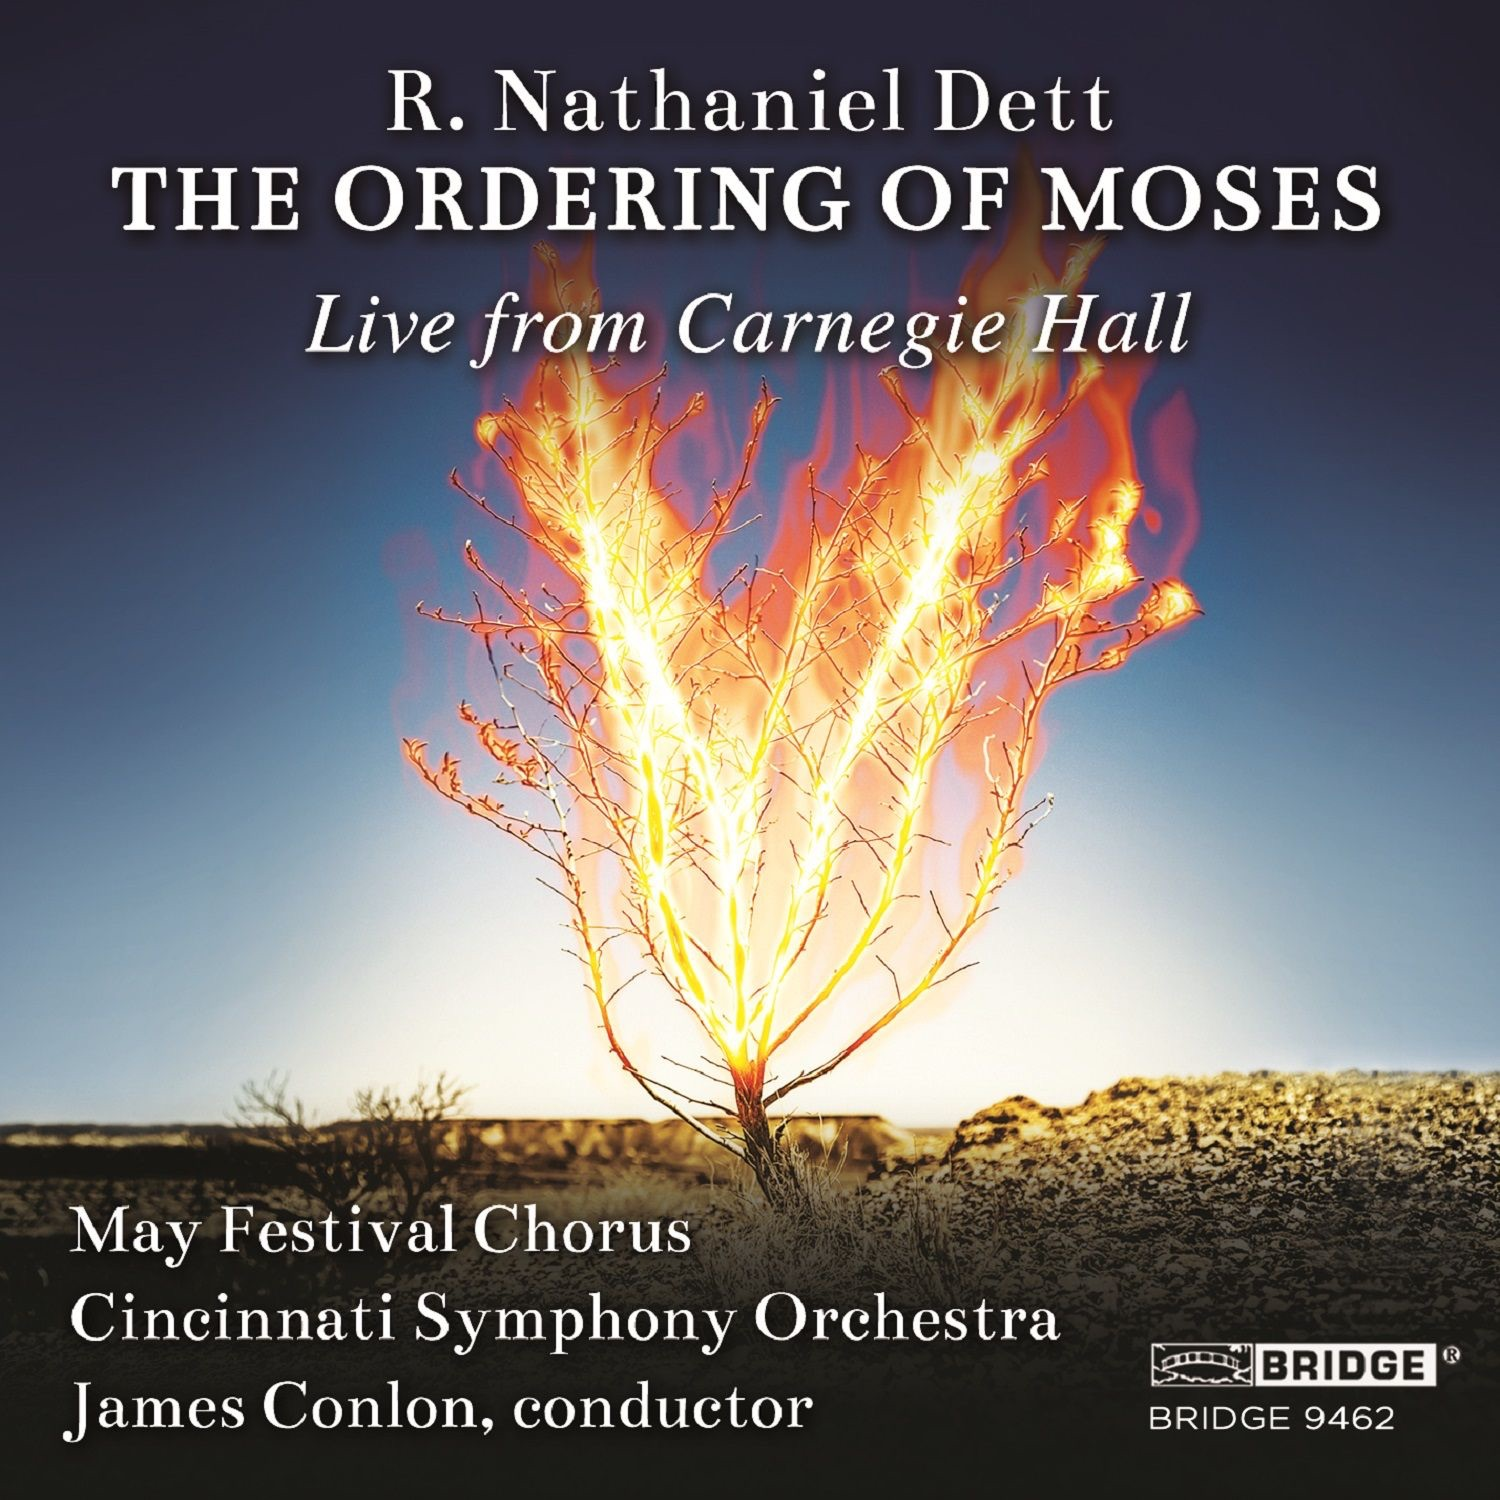 MP3 Songs Online:♫ The Ordering of Moses: VI. Lord, Who Am I? - Cincinnati Symphony Orchestra album R. Nathaniel Dett: The Ordering of Moses. Classical,Music,Oratorio,Sacred,Choral,Modern Era listen to music online free without downloading.